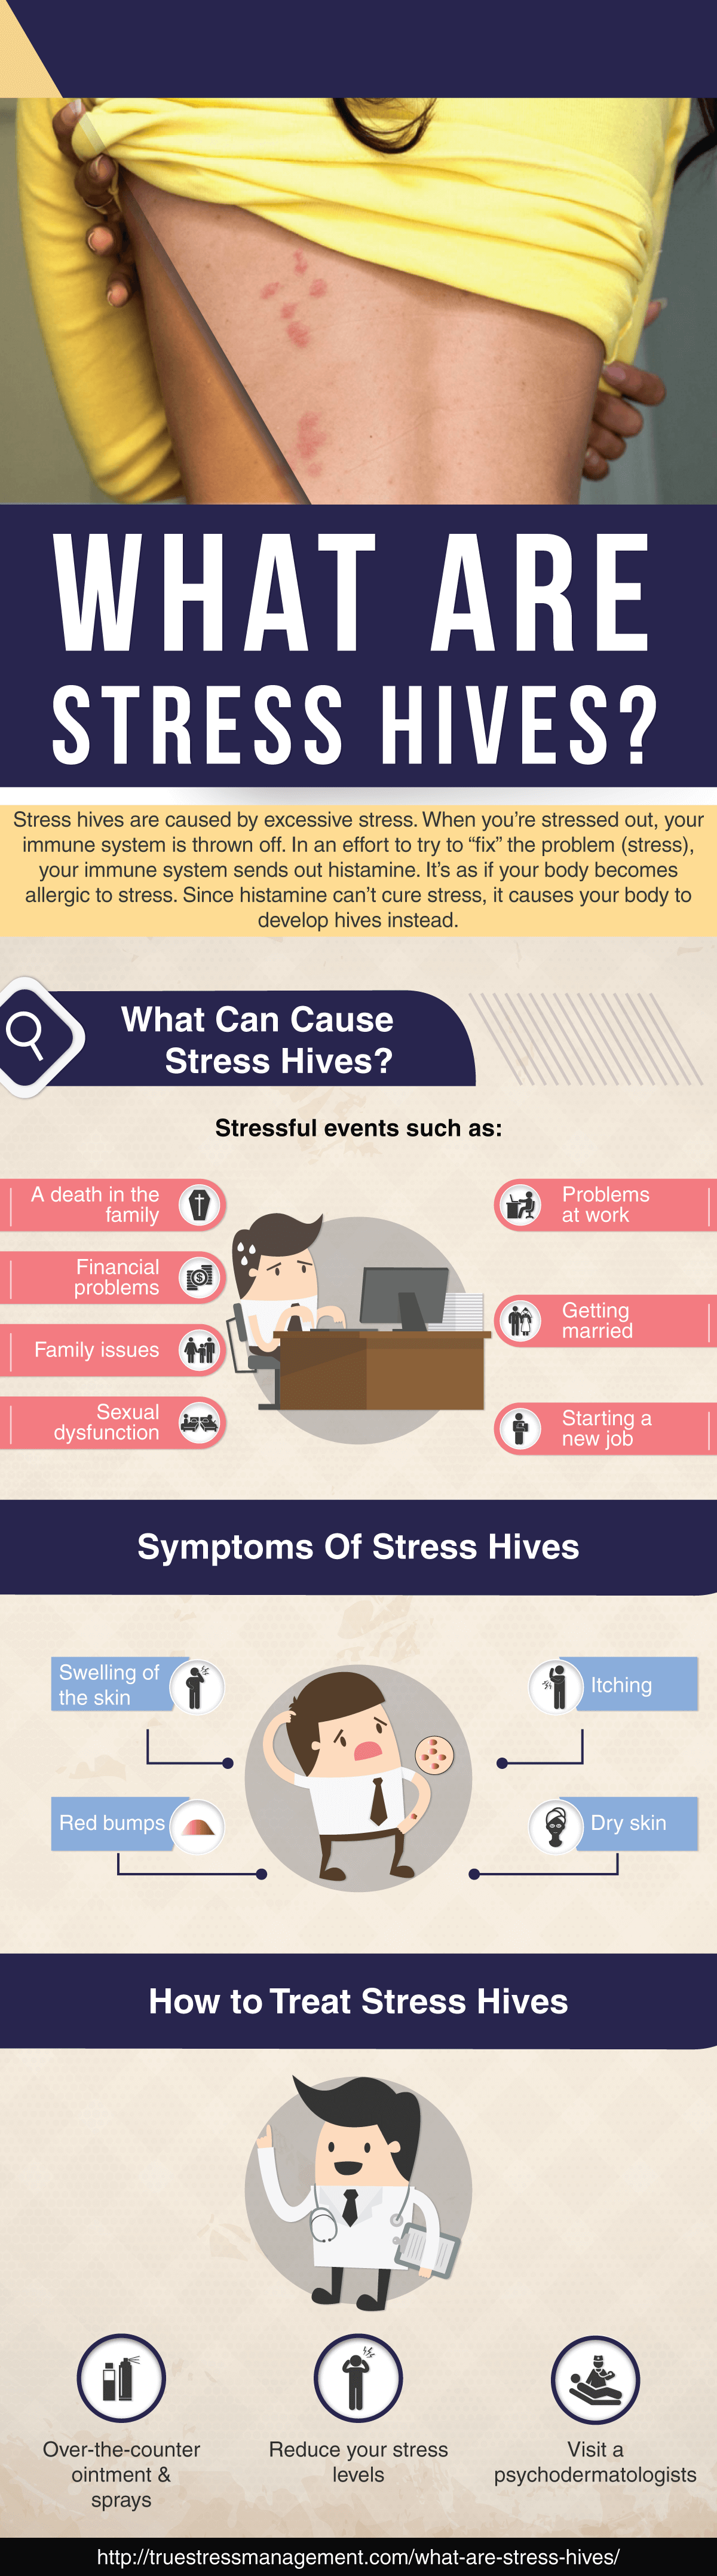 What Are Stress Hives? | Mellowed